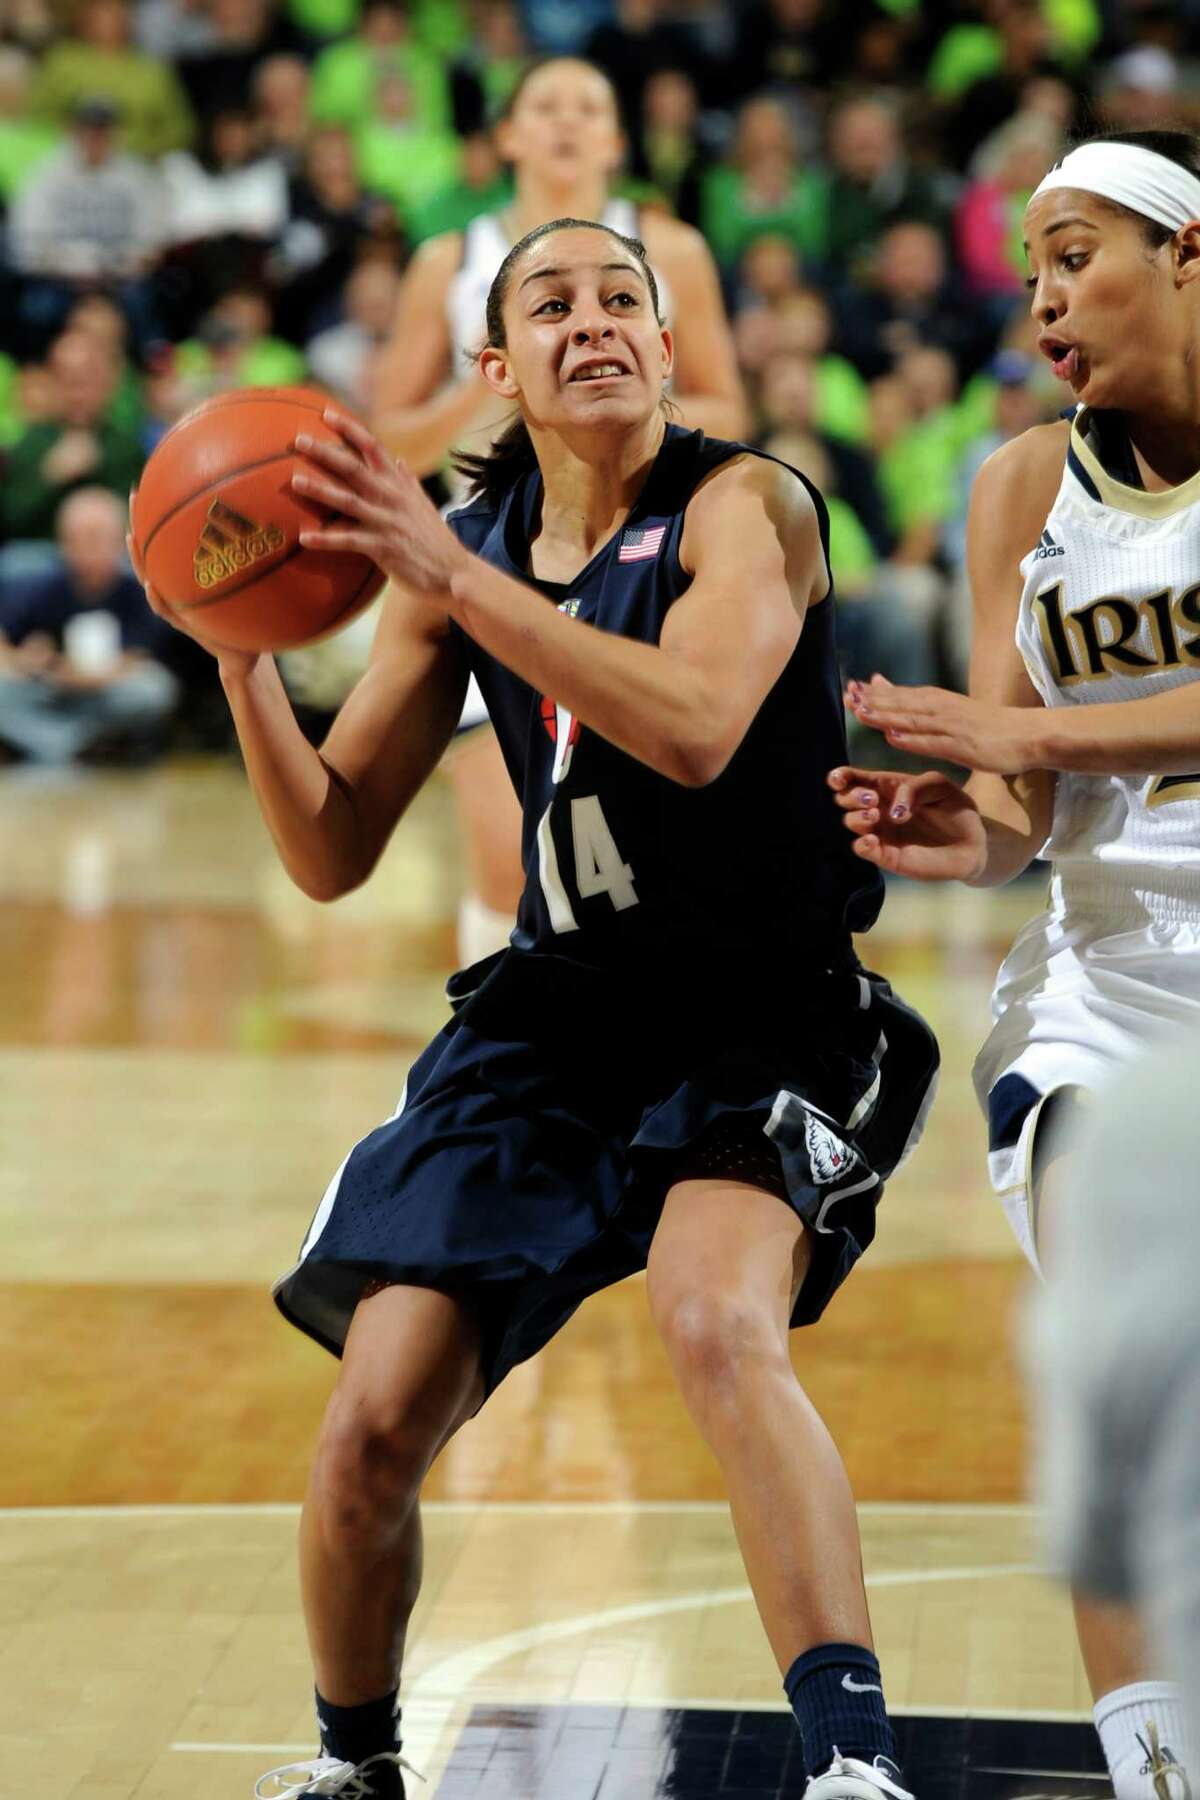 Connecticut guard Bria Hartley, left, heads up court as Notre Dame guard Skylar Diggins defends during action in a college basketball game Monday March 4, 2013 in South Bend, Ind. (AP Photo/Joe Raymond)